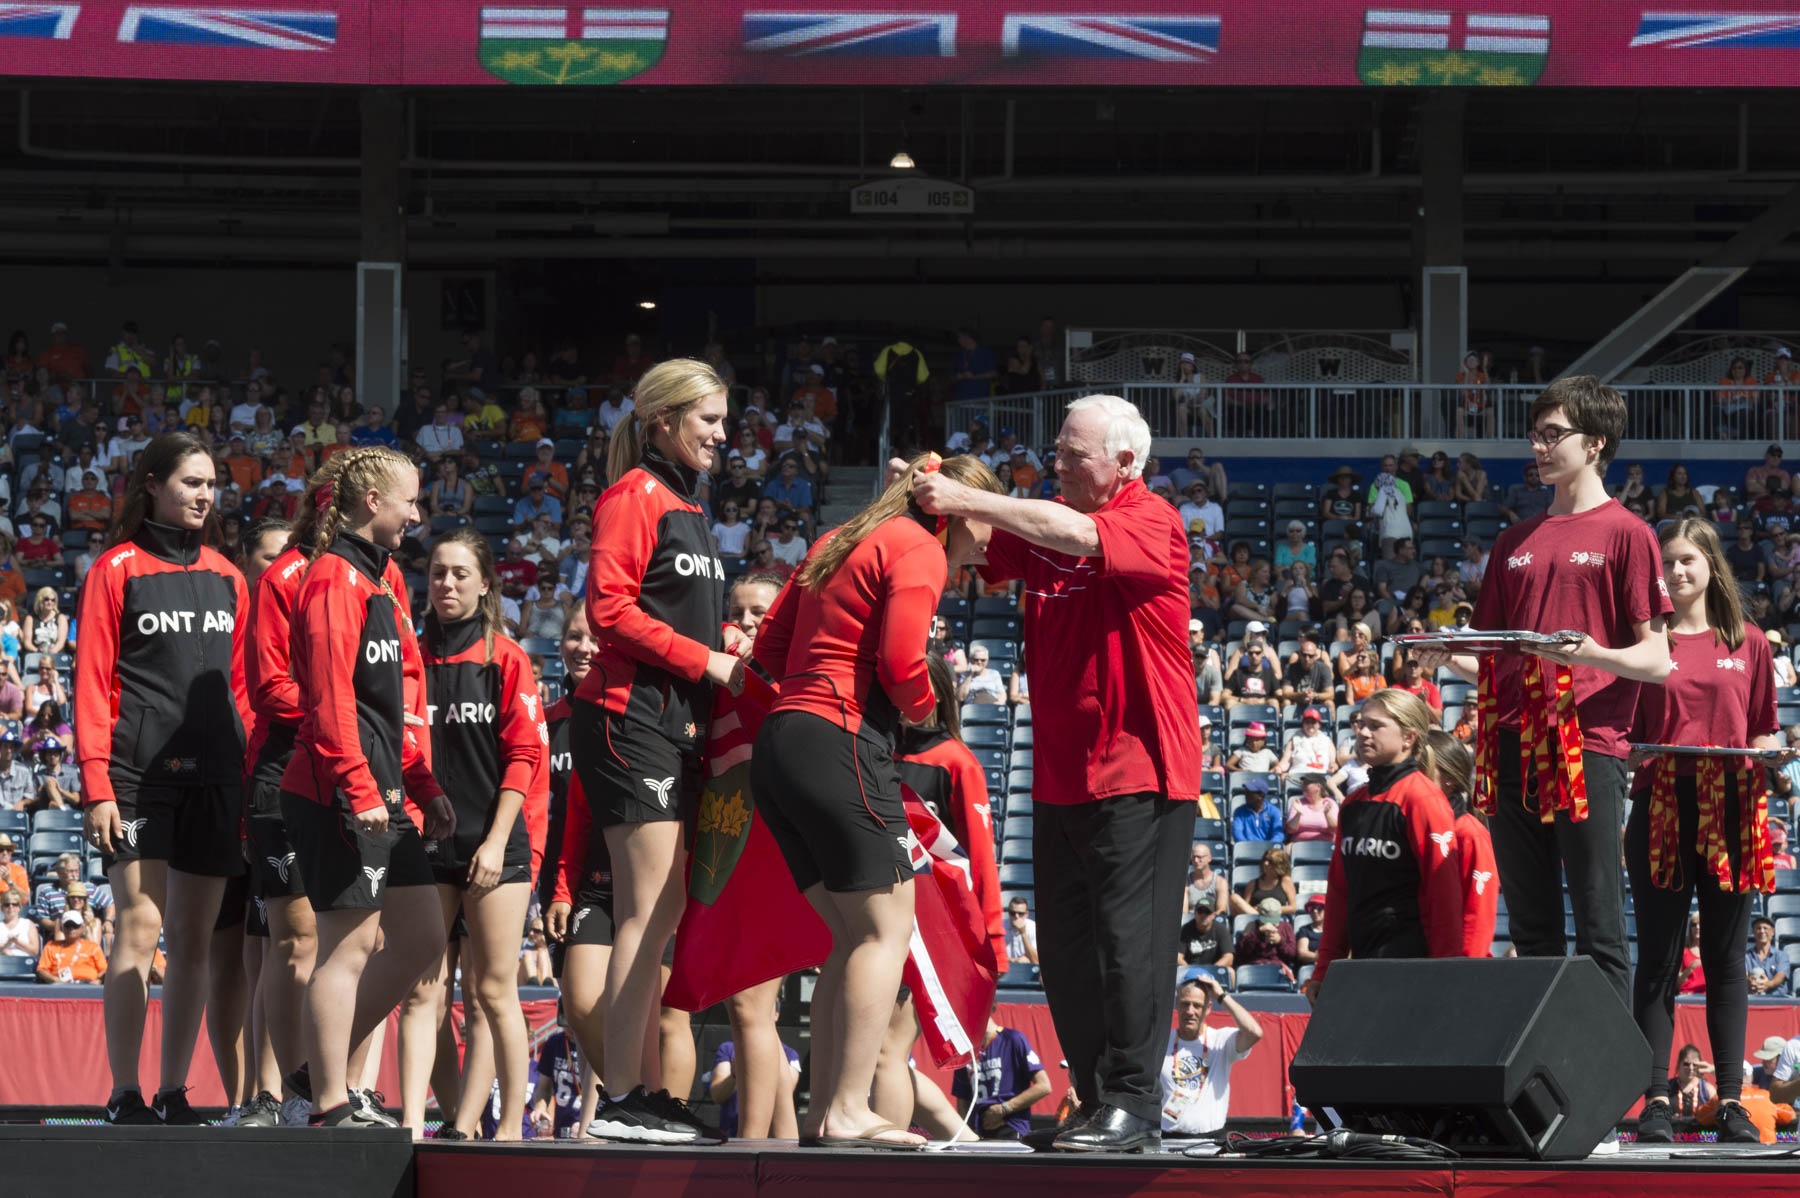 Before officially closing the Games, the Governor General presented the bronze medal to Team Ontario's women's softball.